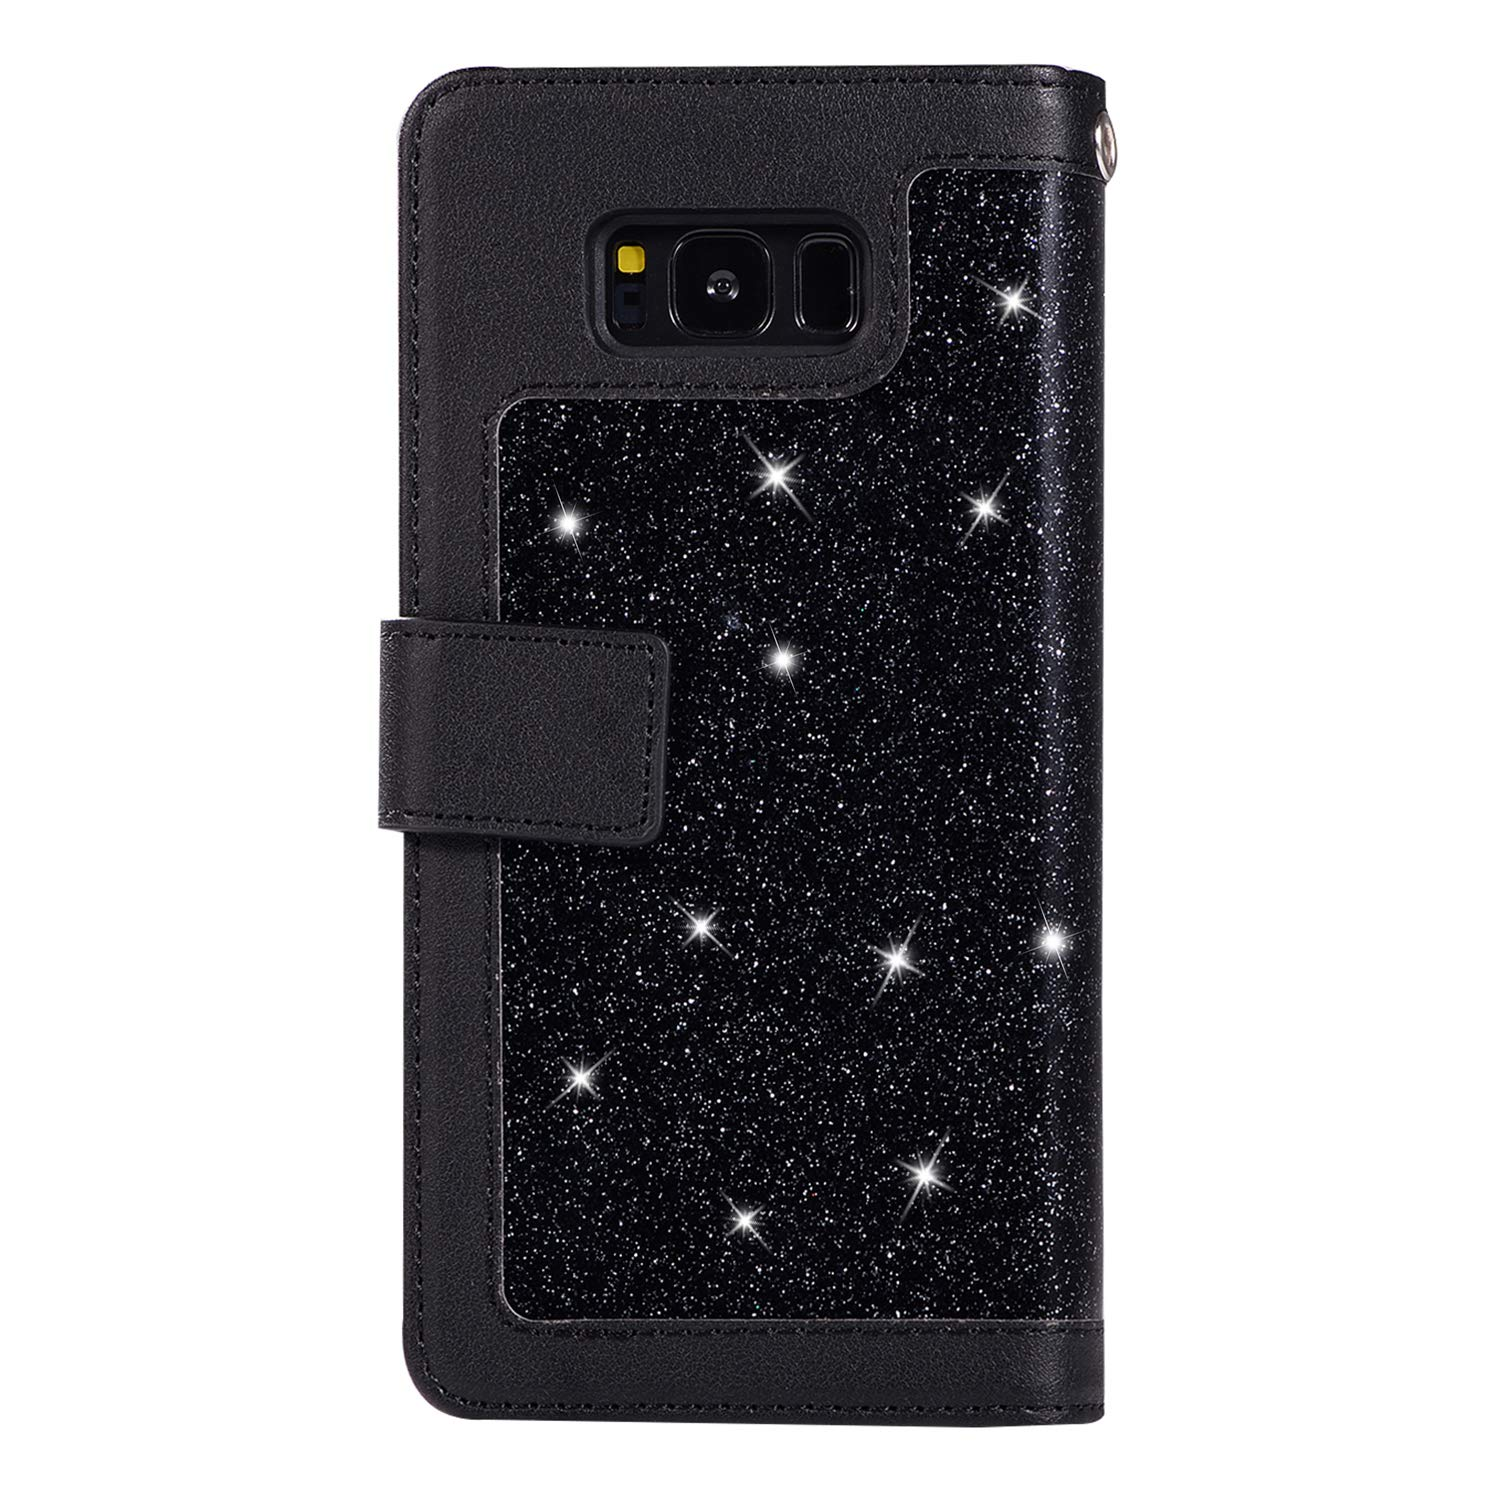 Shinyzone Glitter PU Case for Samsung Galaxy S8,Wallet Leather Flip Case with Zipper Pocket,Bling Cover with 9 Card Holder and Wrist Strap Magnetic Stand Function,Black by Shinyzone (Image #3)